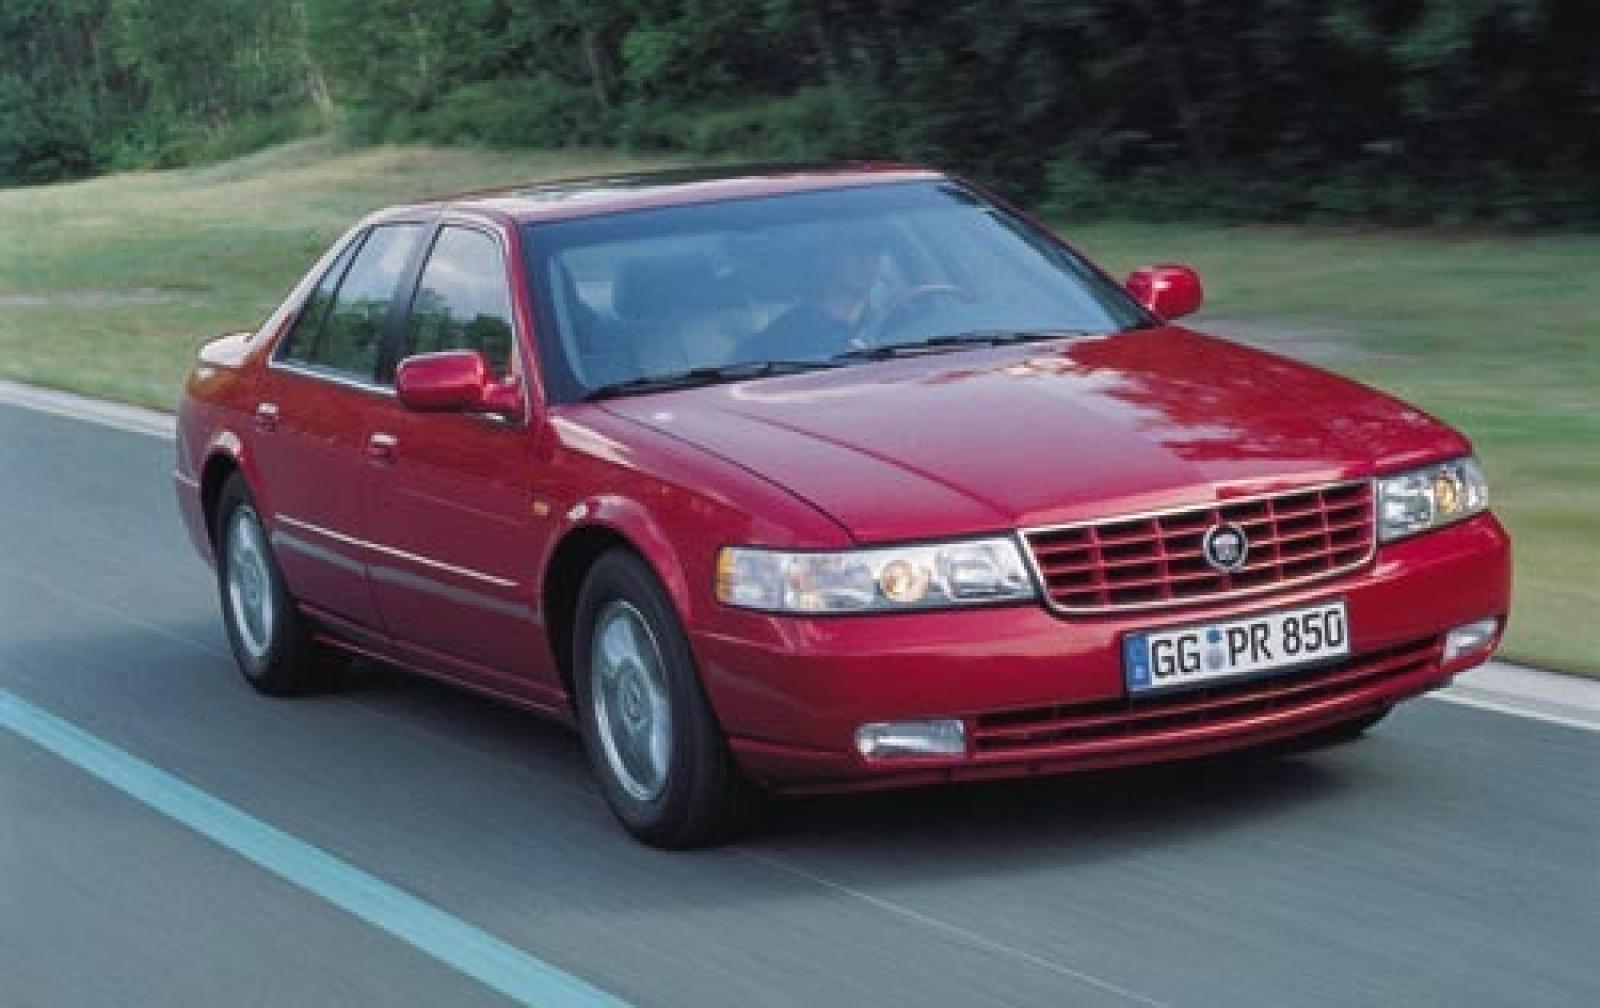 2000 cadillac seville information and photos zombiedrive. Cars Review. Best American Auto & Cars Review